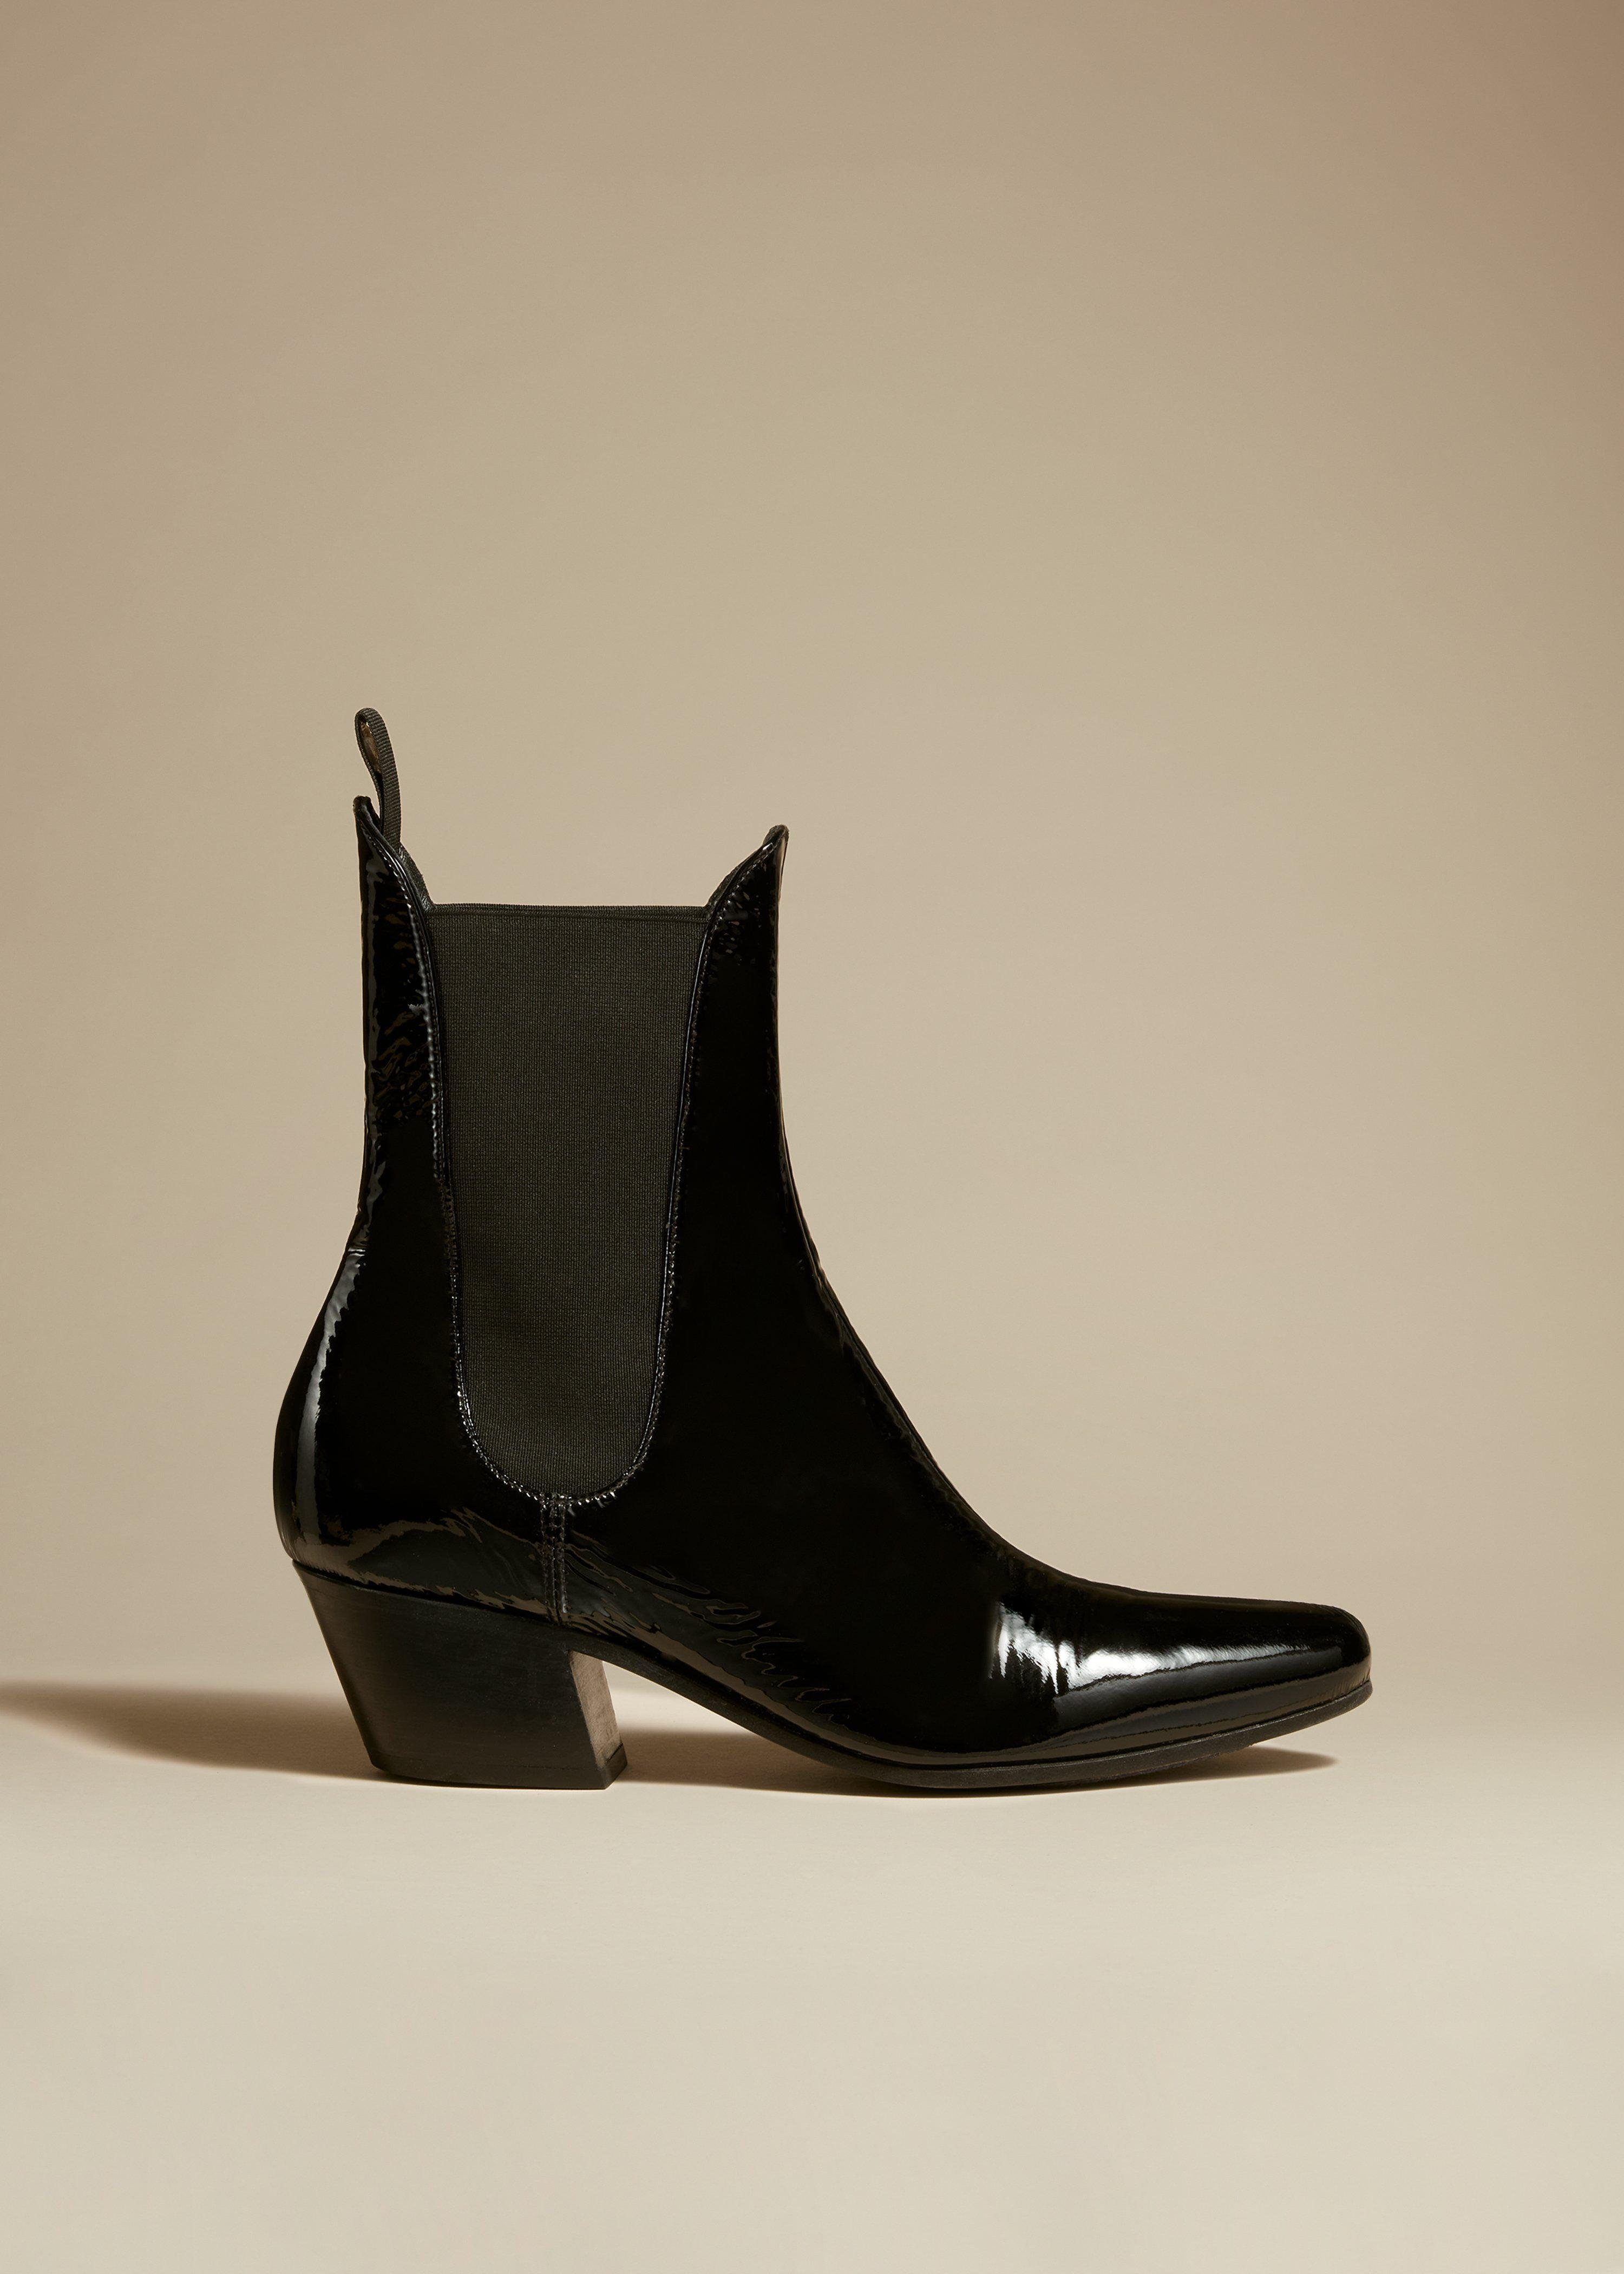 The Saratoga Boot in Black Patent Leather